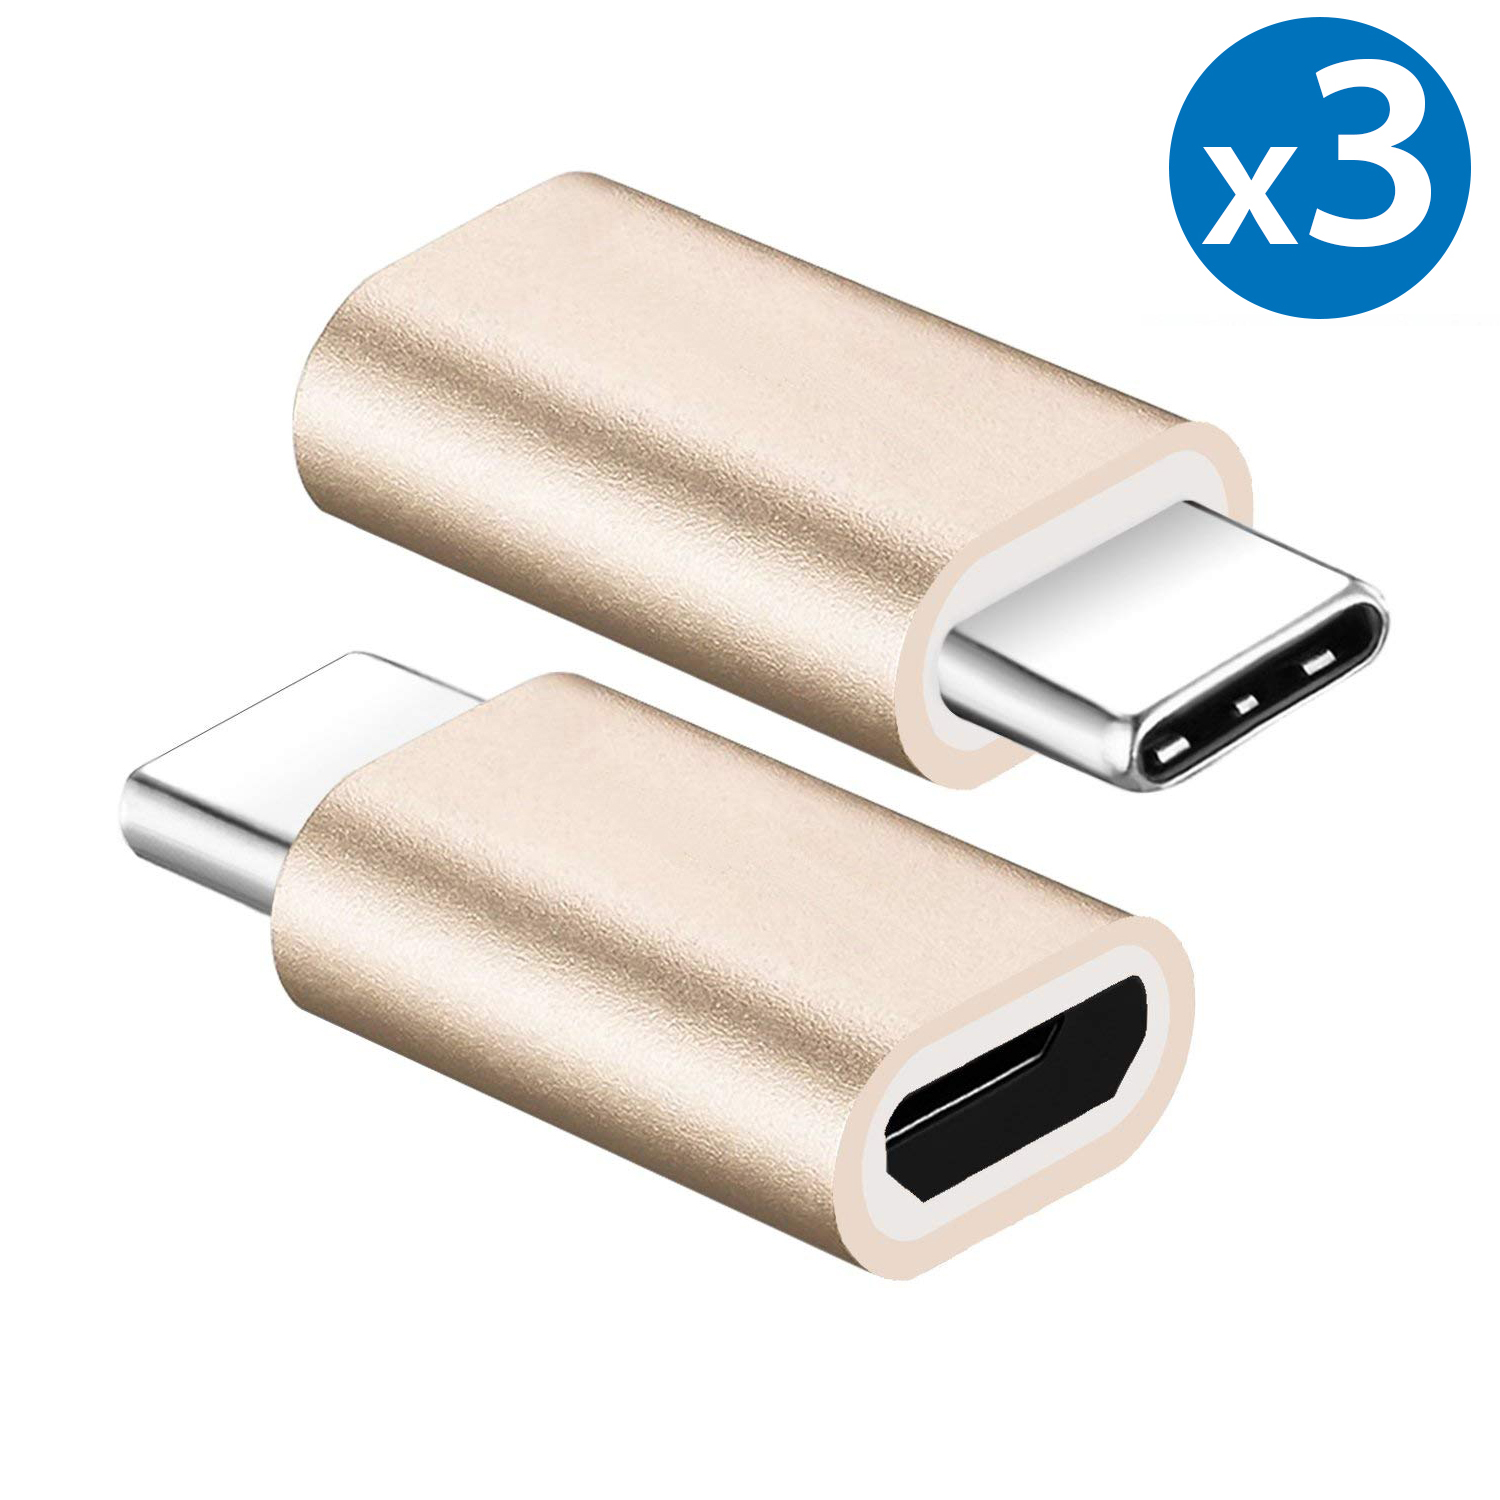 3x FREEDOMTECH Type C Adapter, Micro USB to USB C Adapter, Data Sync and Charging, Universal for Mac, ChromeBook Pixel, Nexus 5X, Nexus 6P, Nokia N1, Samsung Galaxy S9/S8, Note 8/9 All Type C Devices